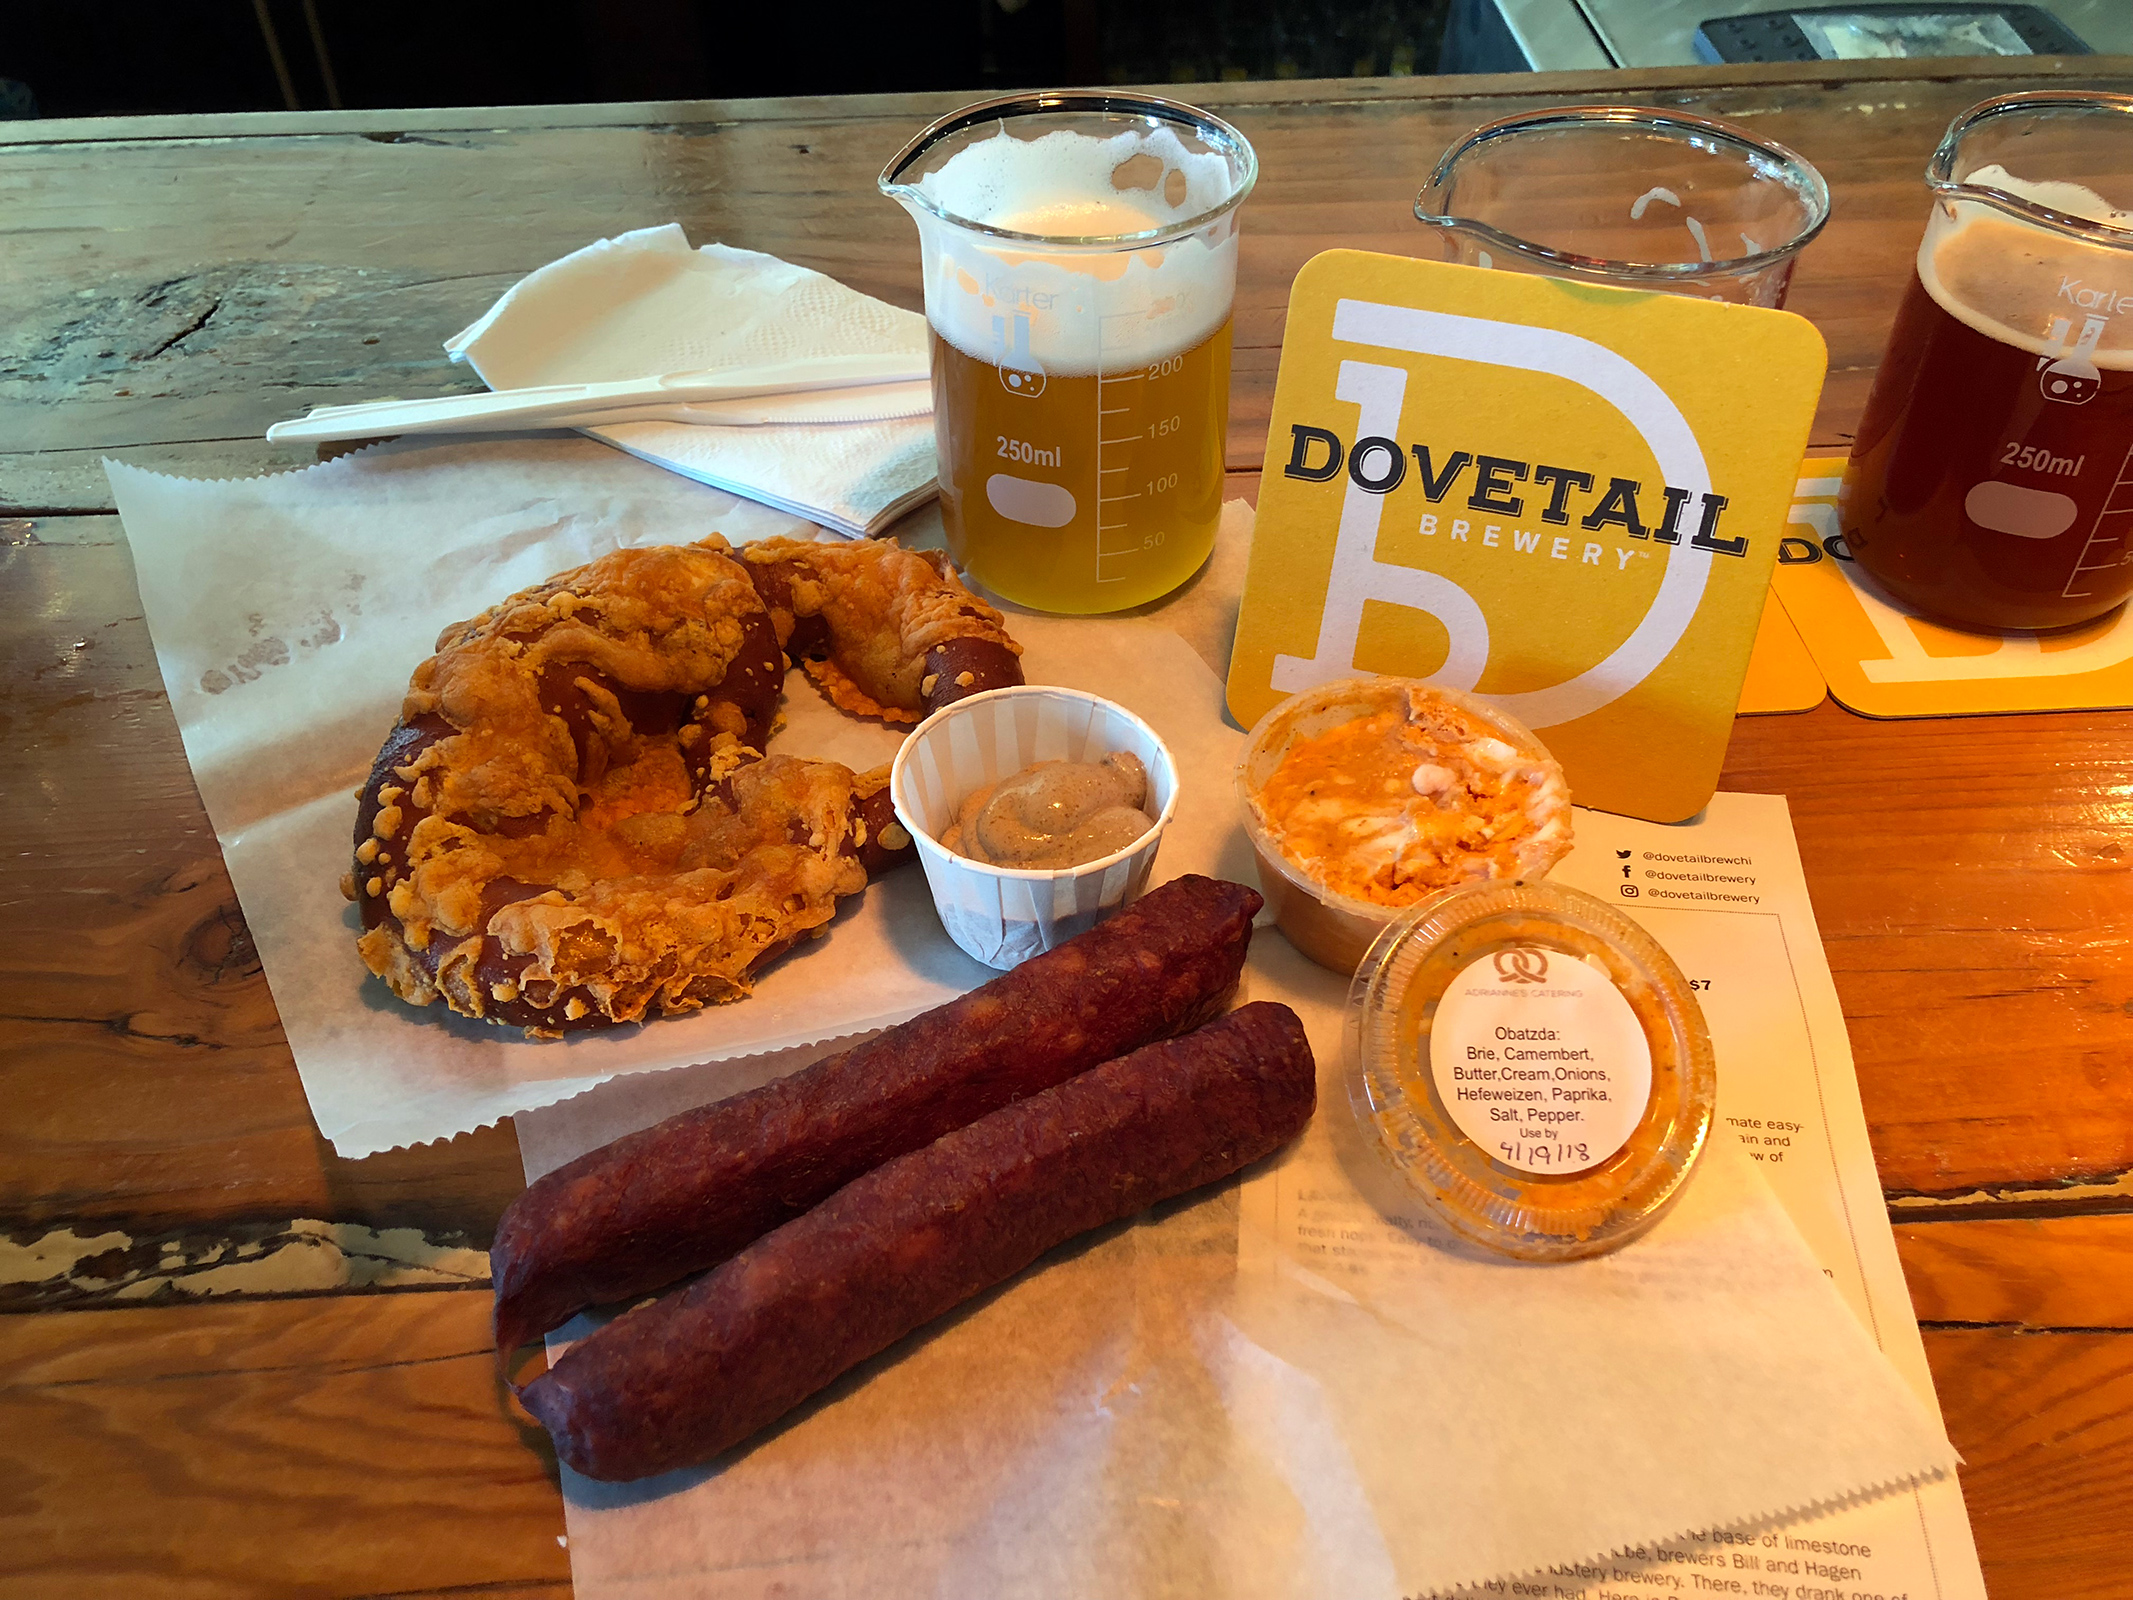 Dovetail Brewery by Jets Like Taxis / Hopsmash